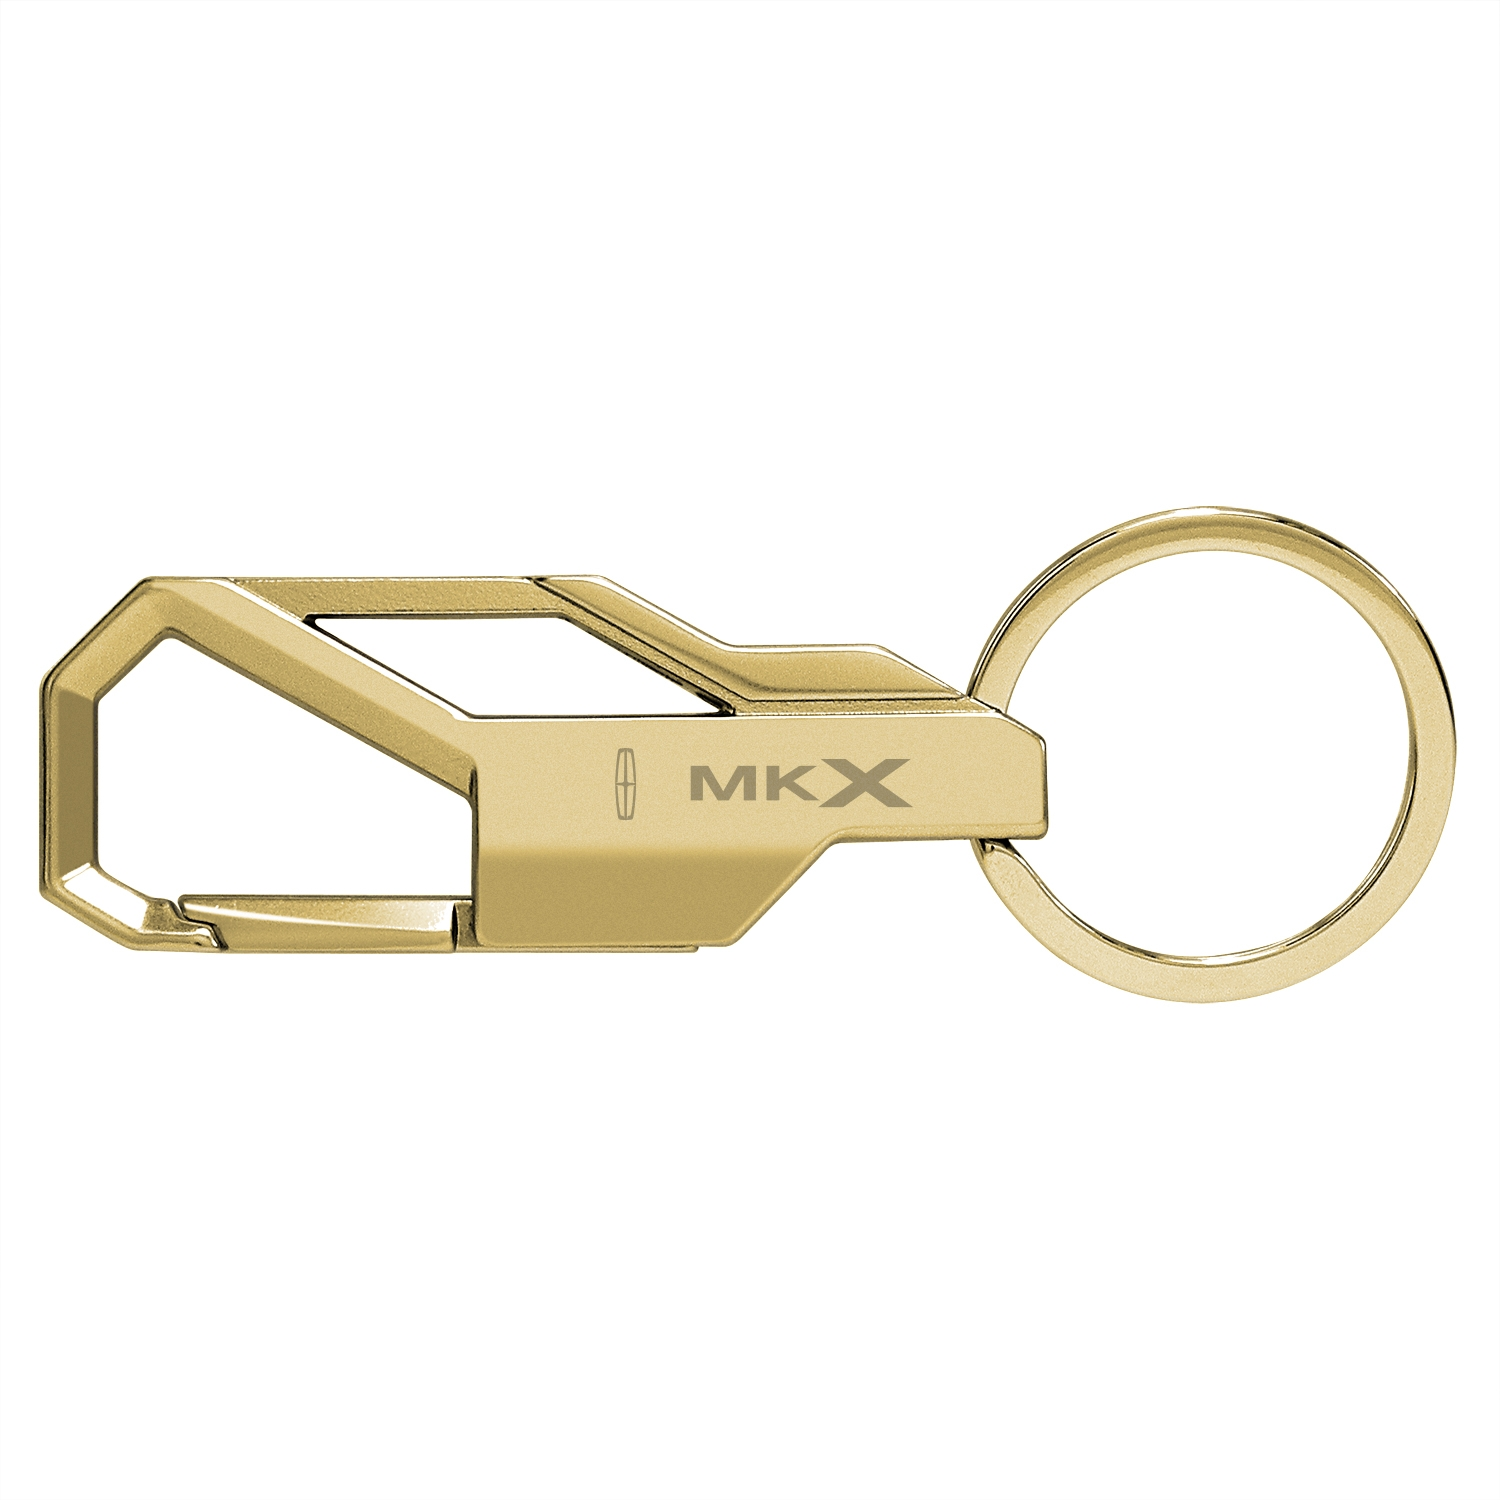 Lincoln MKX Golden Snap Hook Metal Key Chain